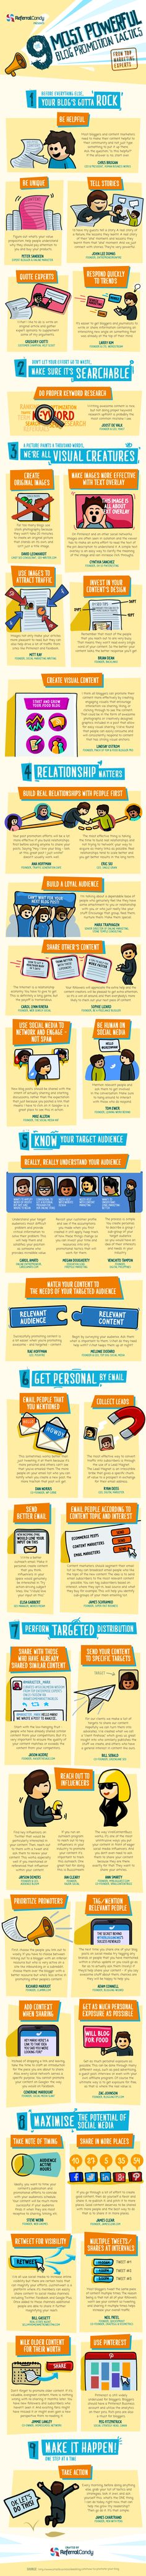 How to promote your b [Infographic] - #Marketing #blogging #socialmedia